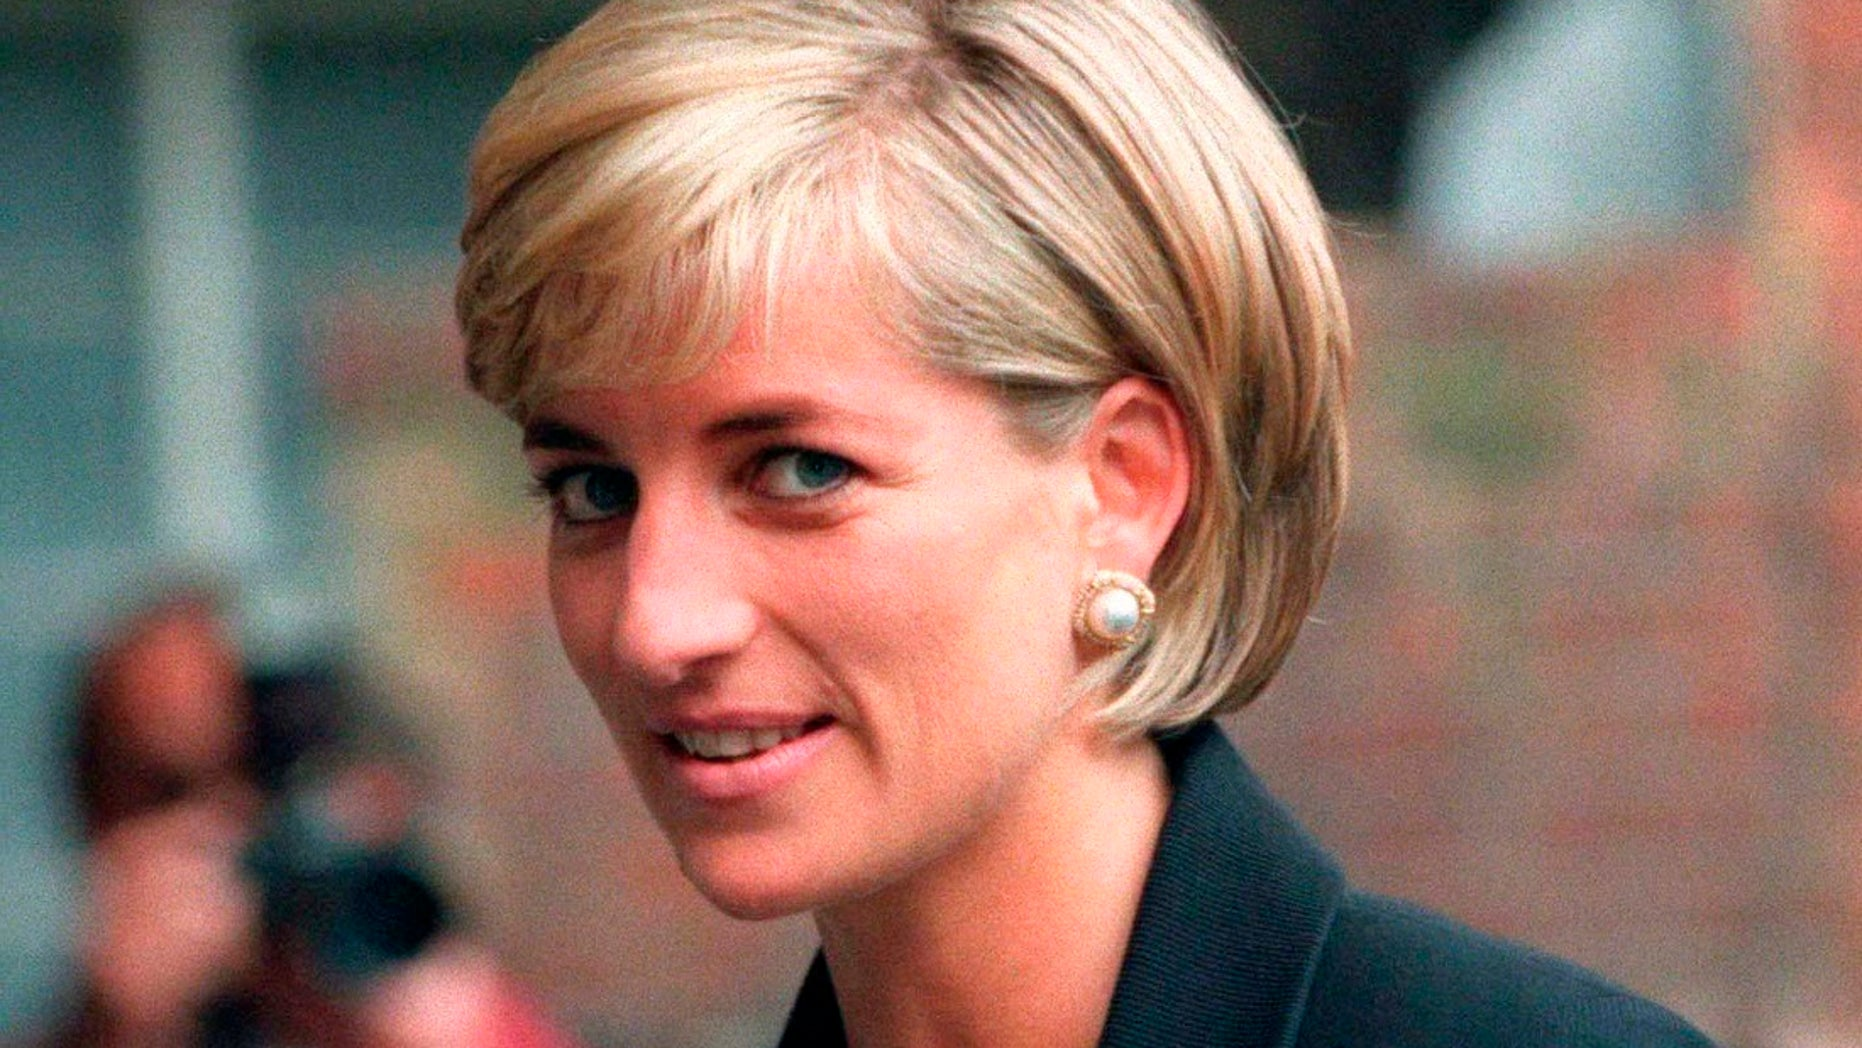 Princess Diana died in August 1997 after she was in a car crash in Paris, France. Conspiracy theories surrounding her death have persisted for years.